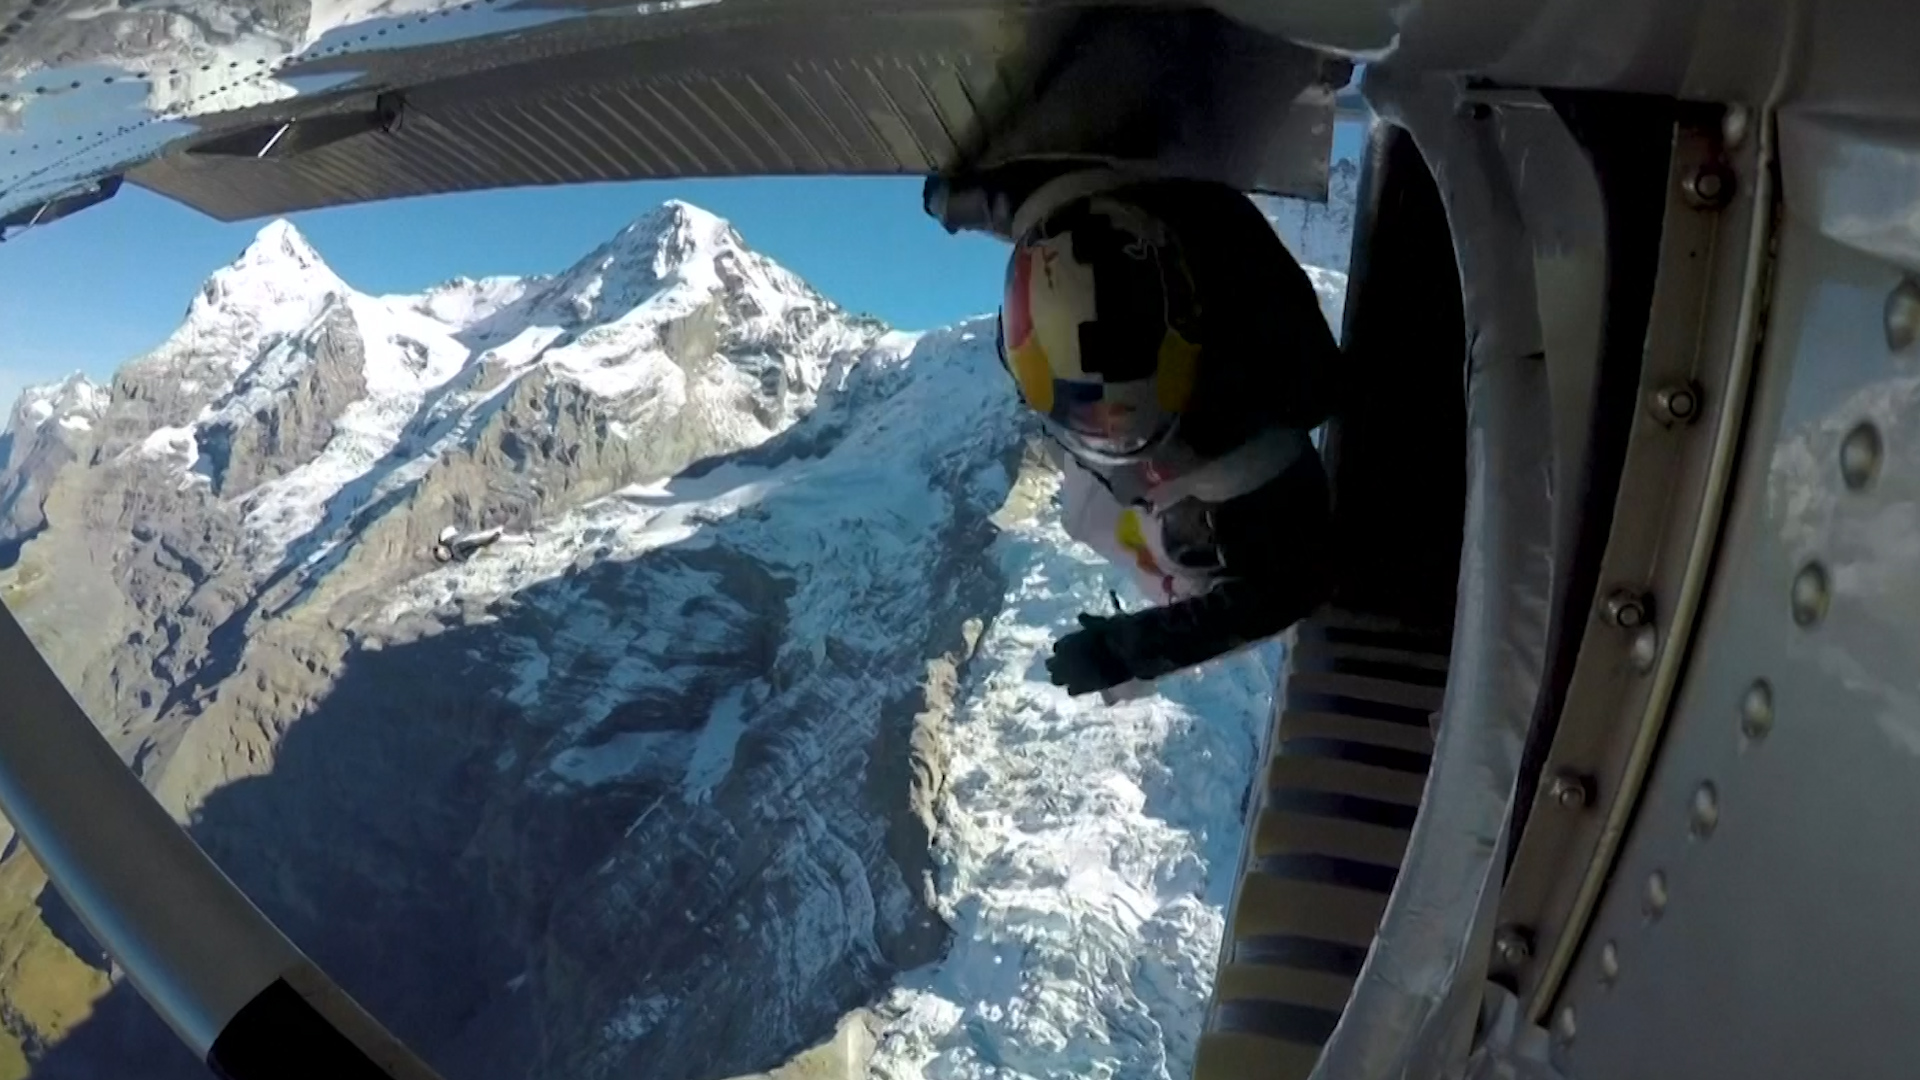 Wingsuit flyers jump from Jungfrau and land inside a plane